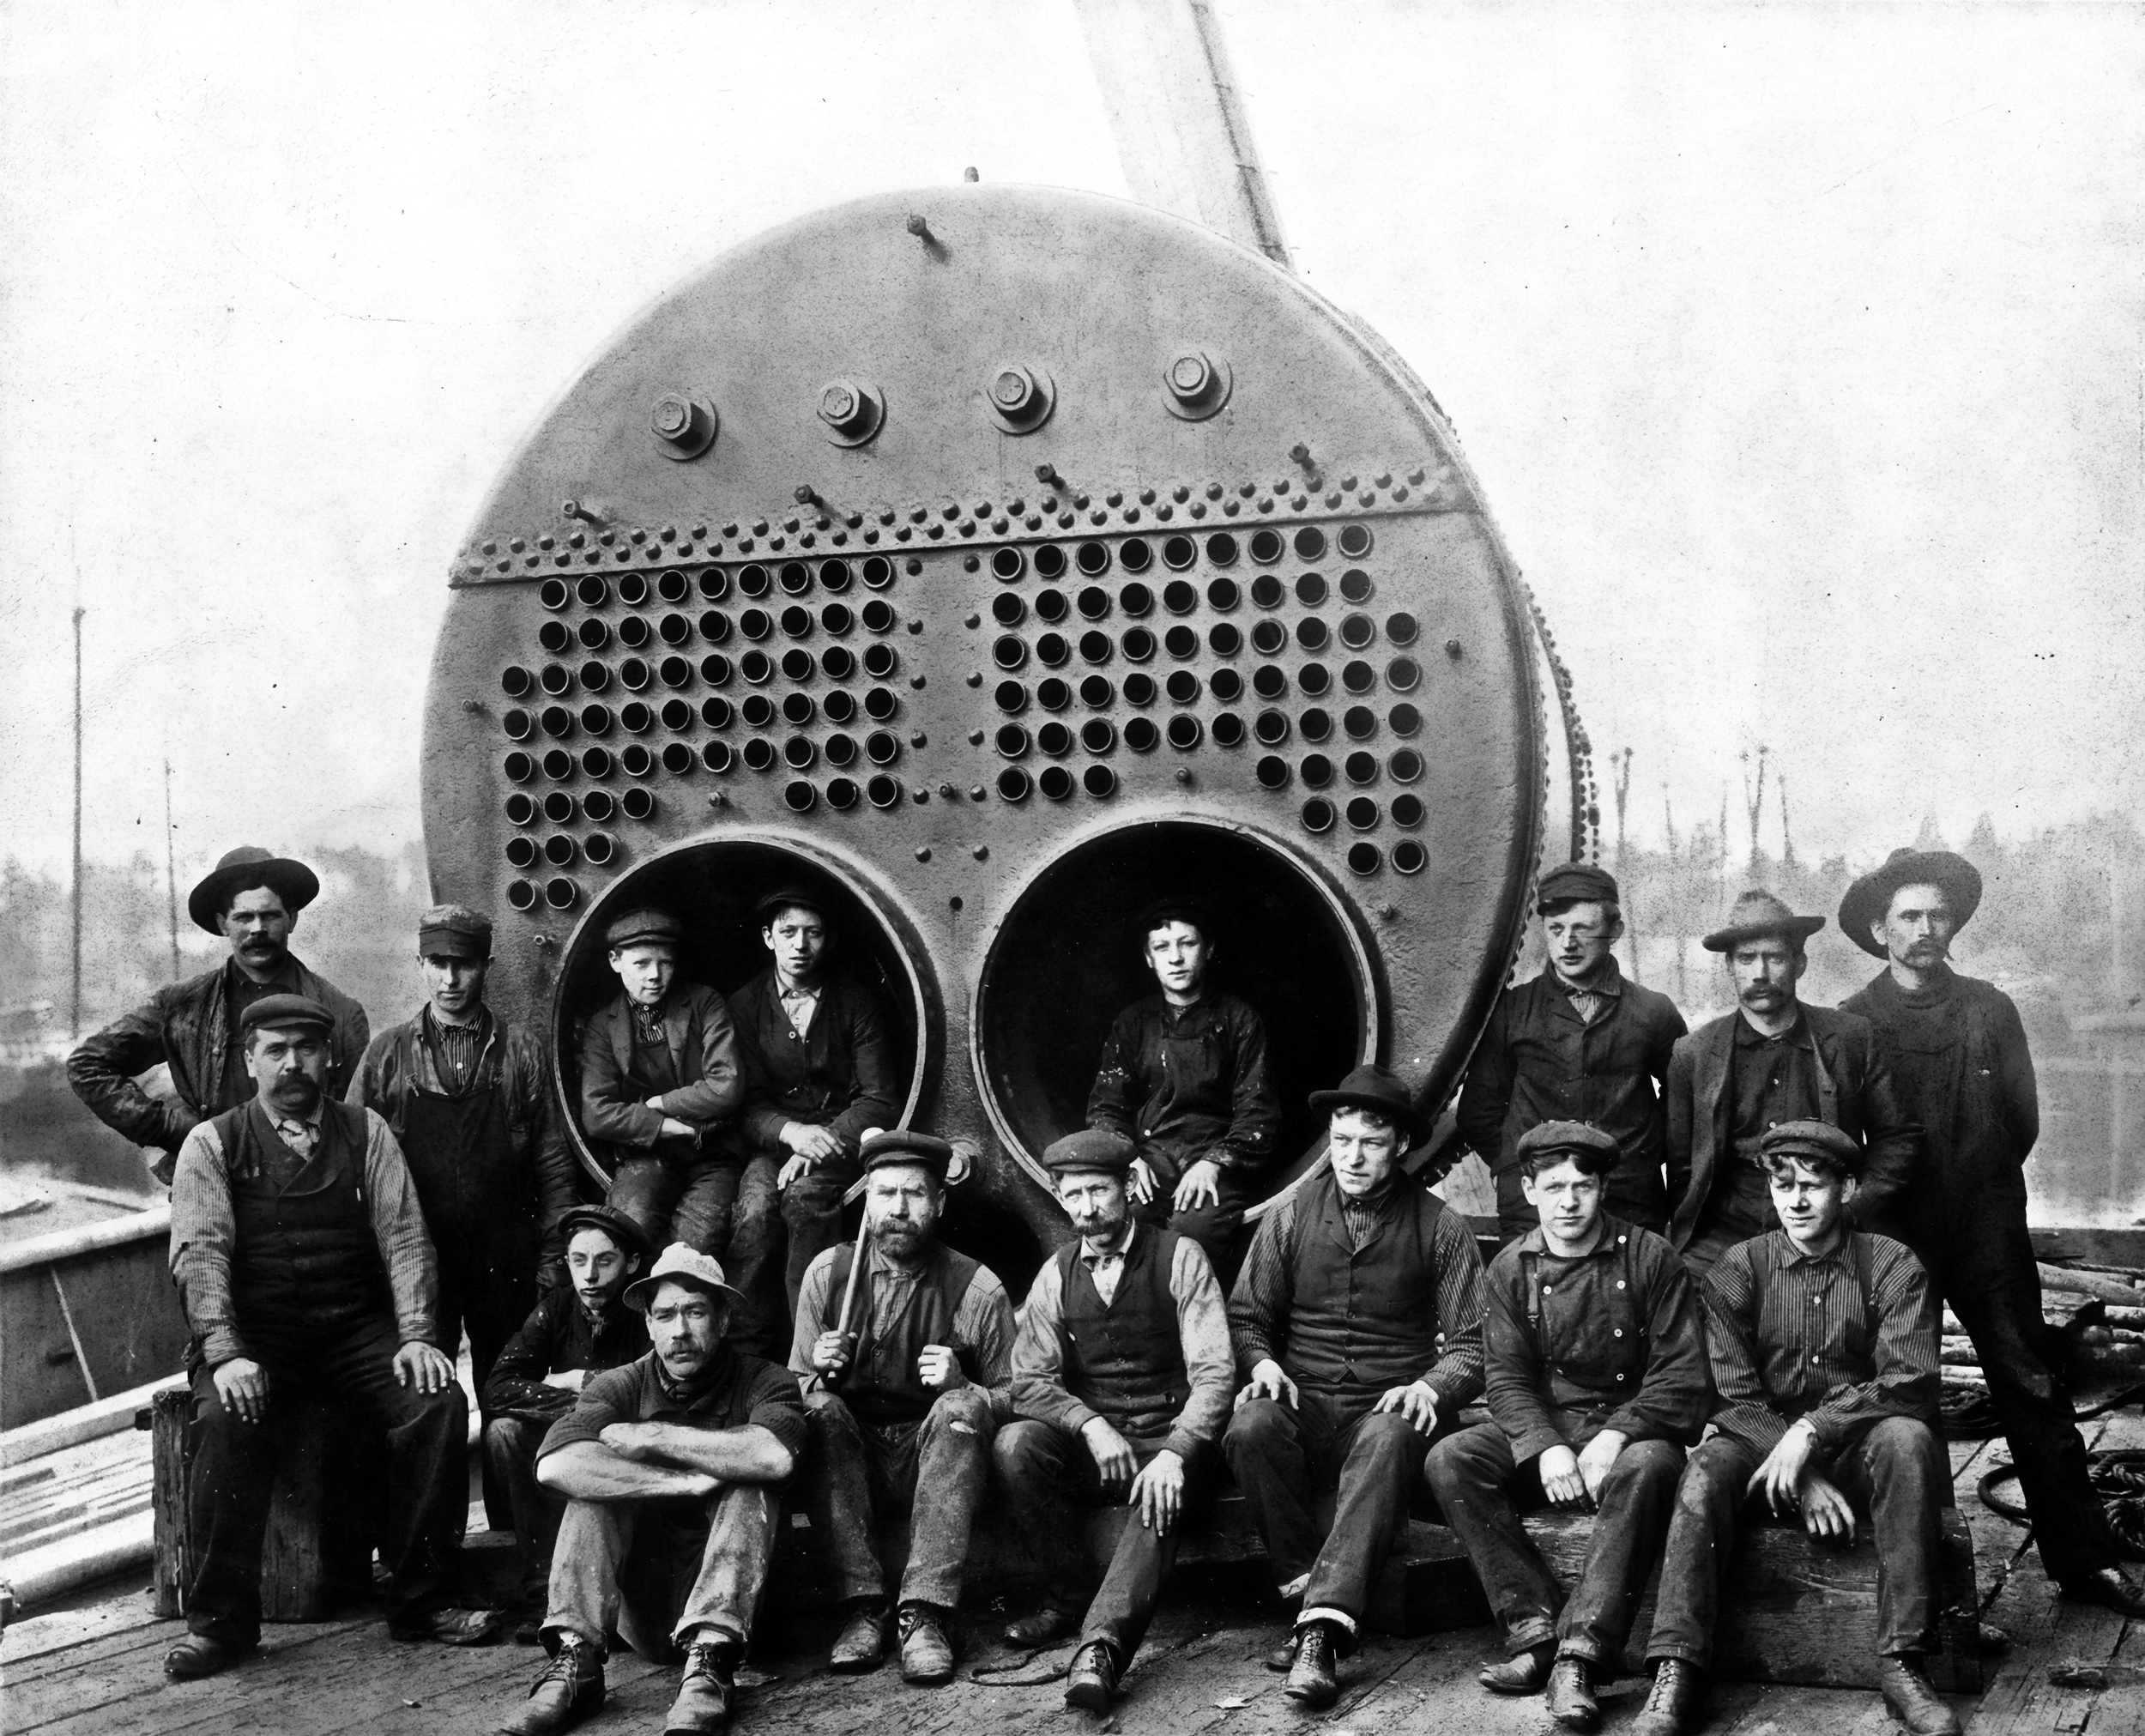 Posing With a Scotch Marine Boiler, Vancouver, British Columbia